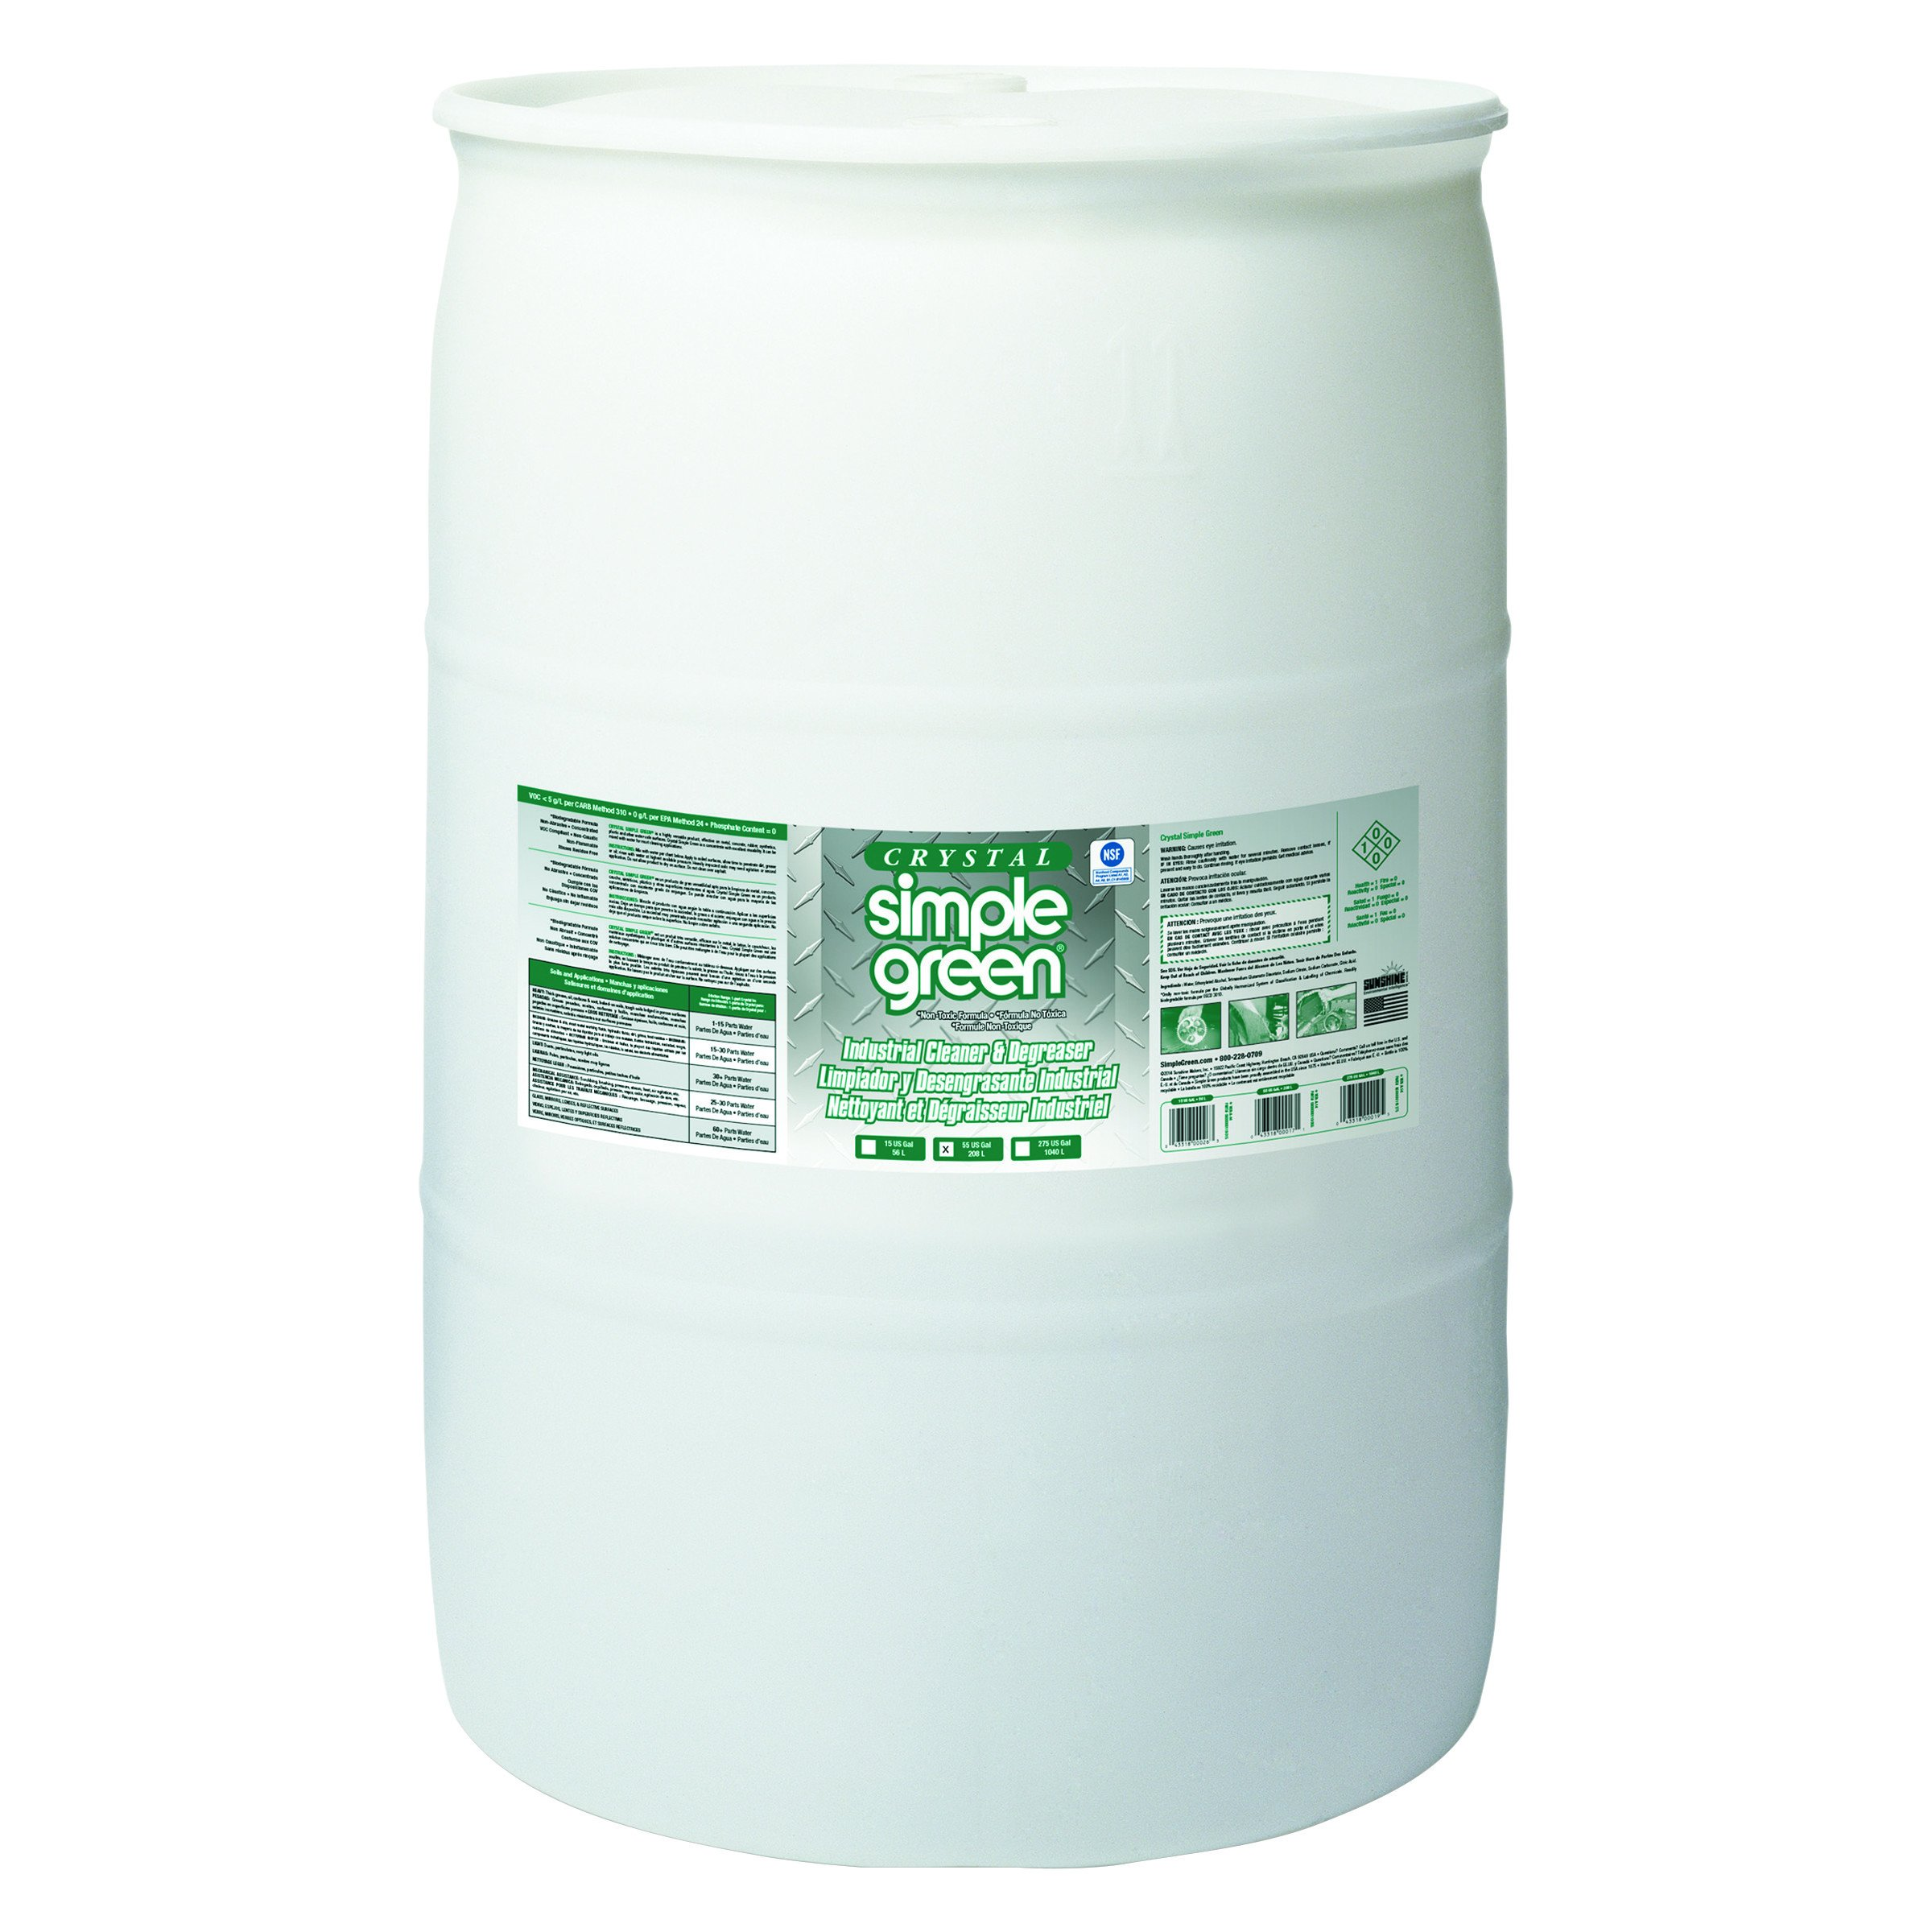 Simple Green 19055 Crystal Industrial Cleaner/Degreaser, 55 Gallon Drum